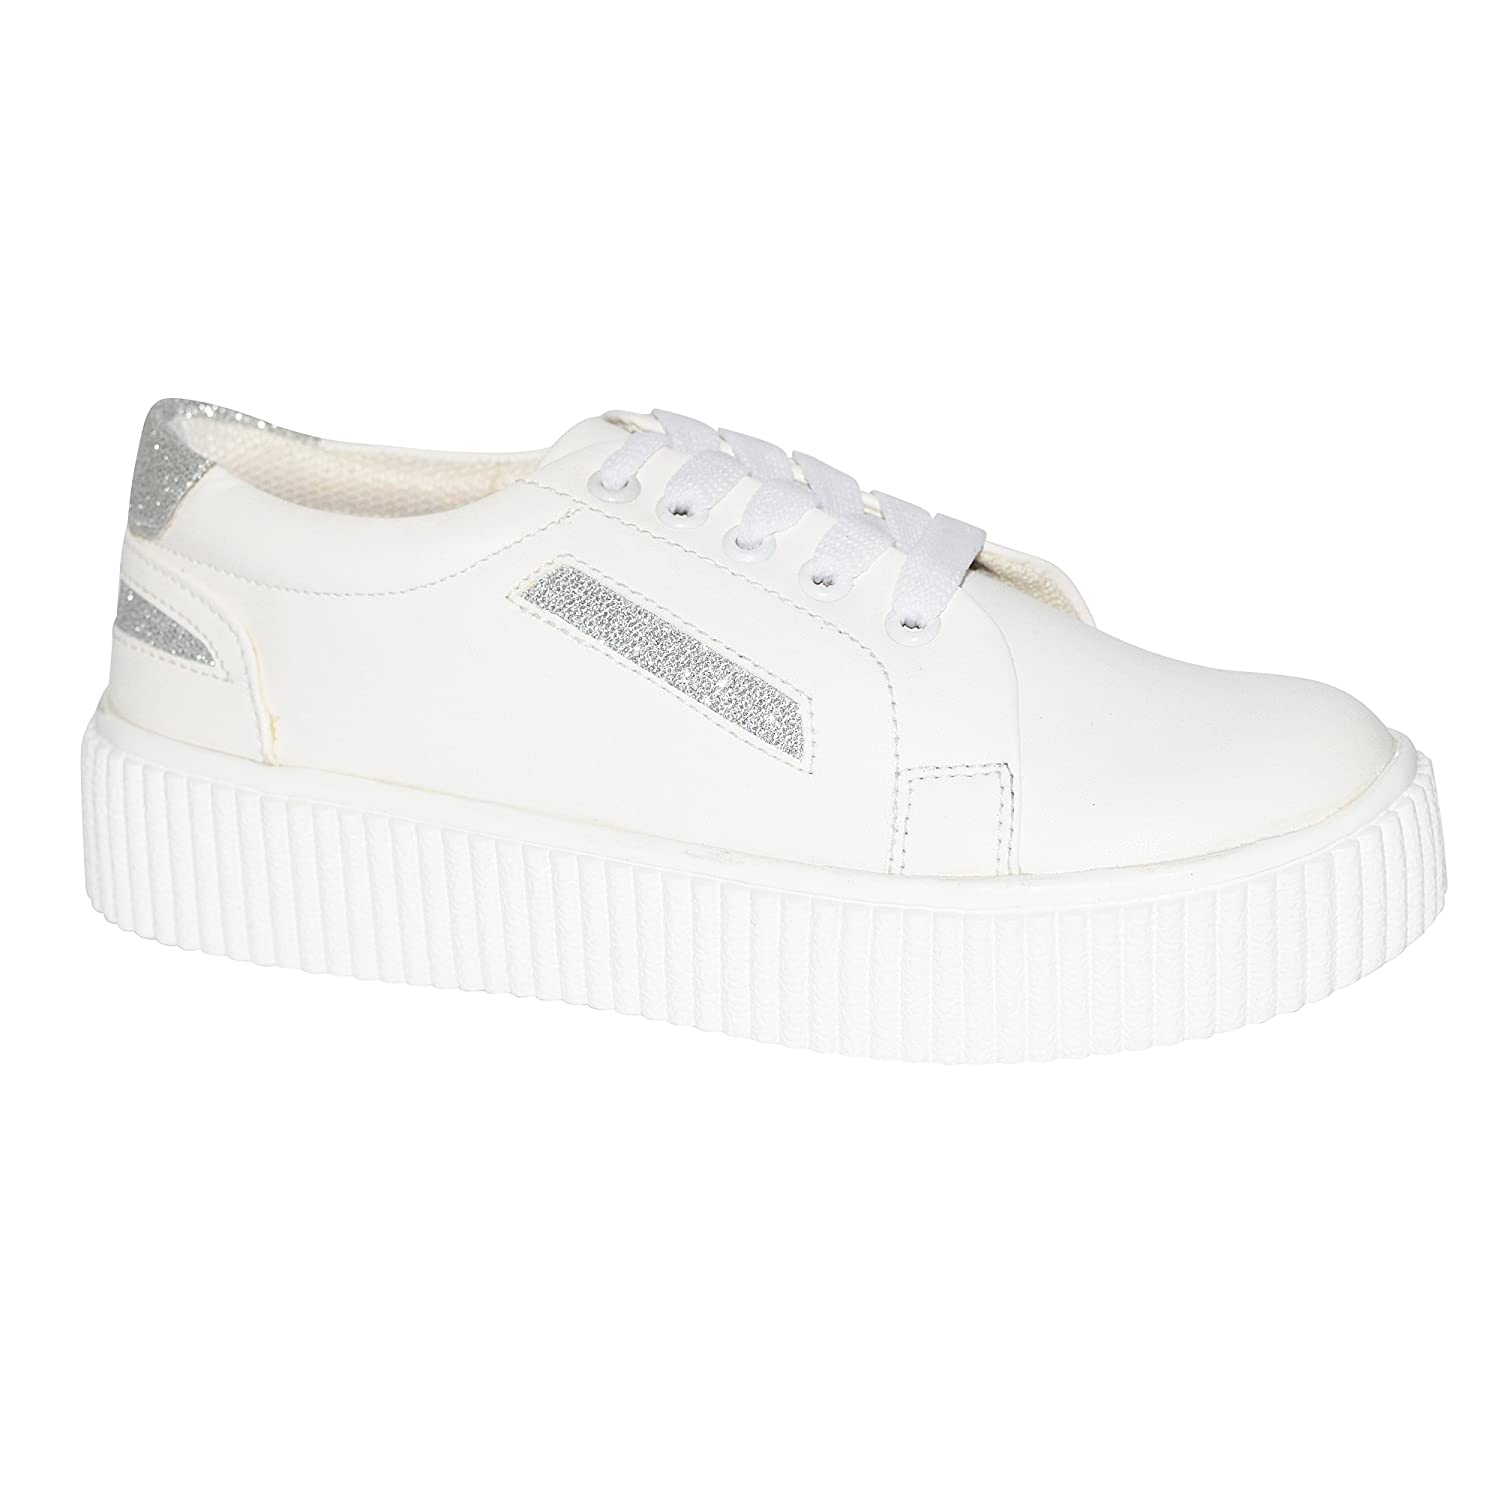 534dec38e Trendy Look Women's White Synthetic Casual Sneakers-8: Buy Online at Low  Prices in India - Amazon.in